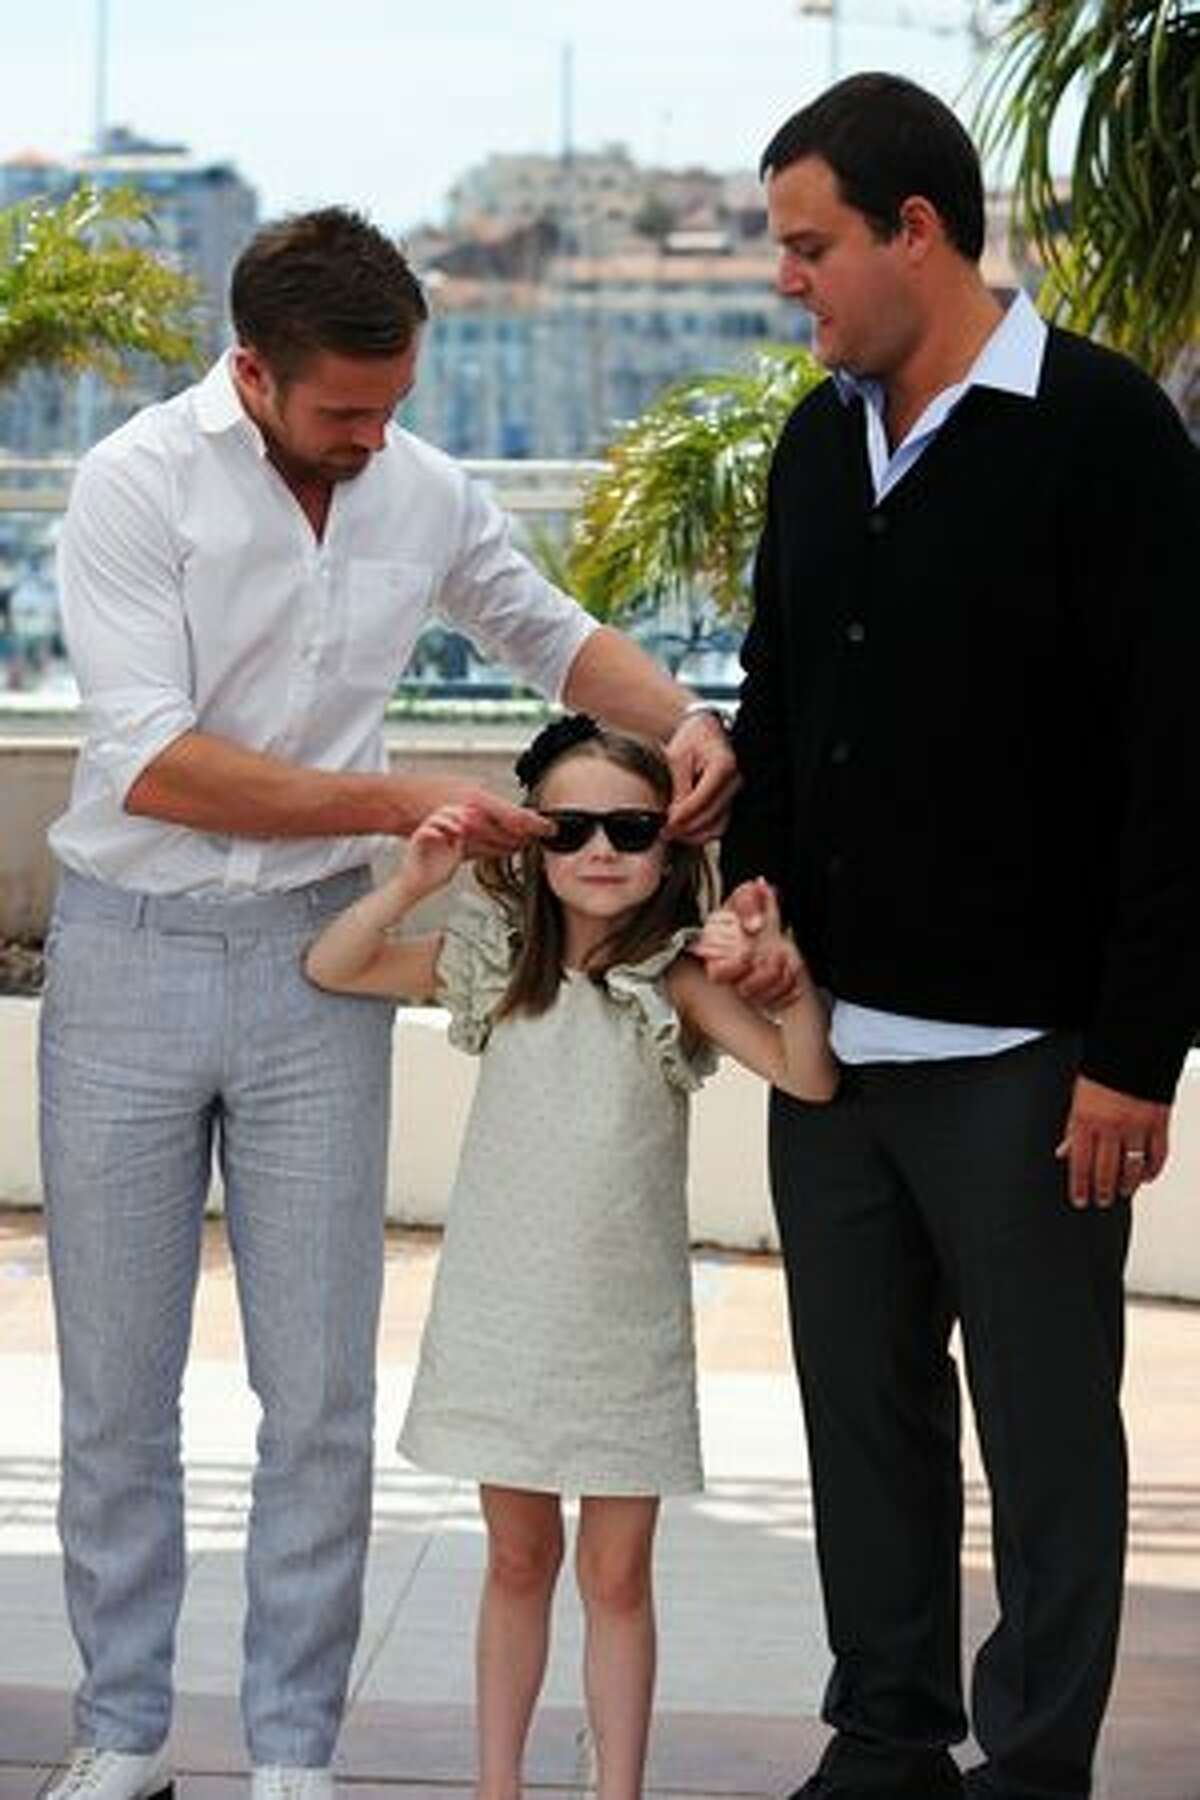 Actor Ryan Gosling, actress Faith Wladyka and producer Jamie Patricof attend the